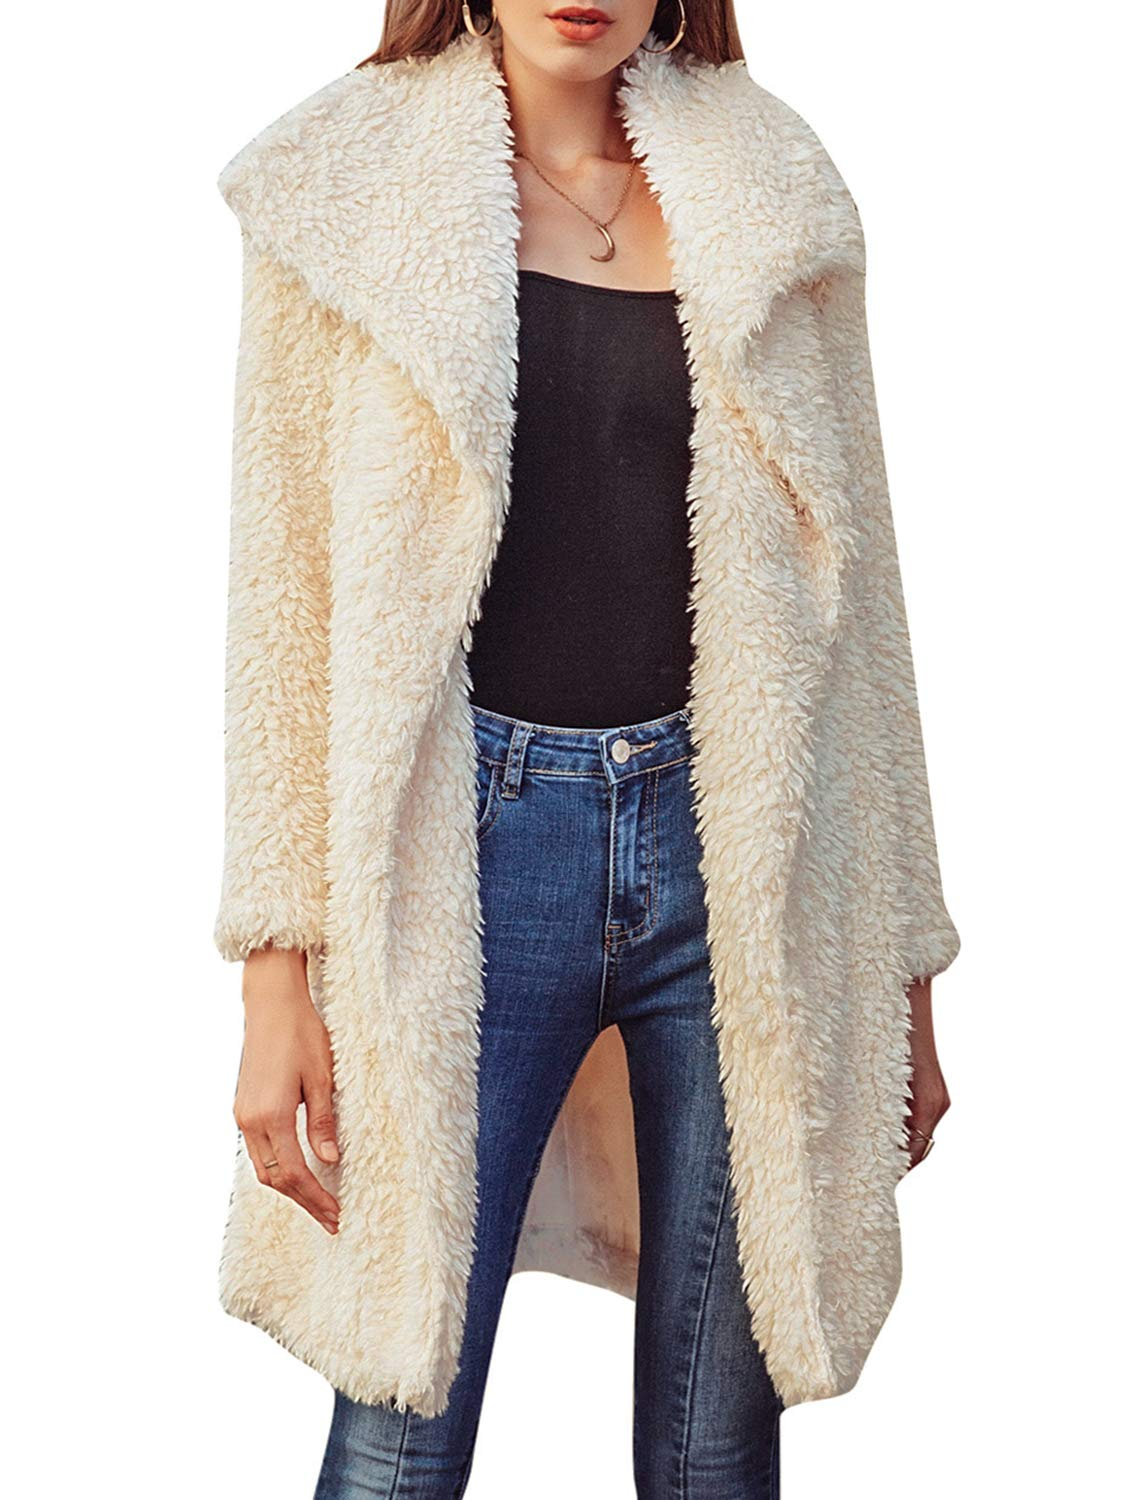 BerryGo Women's Casual Faux Fur Long Coat Lapel Shaggy Open Front Jackets Apricot,M